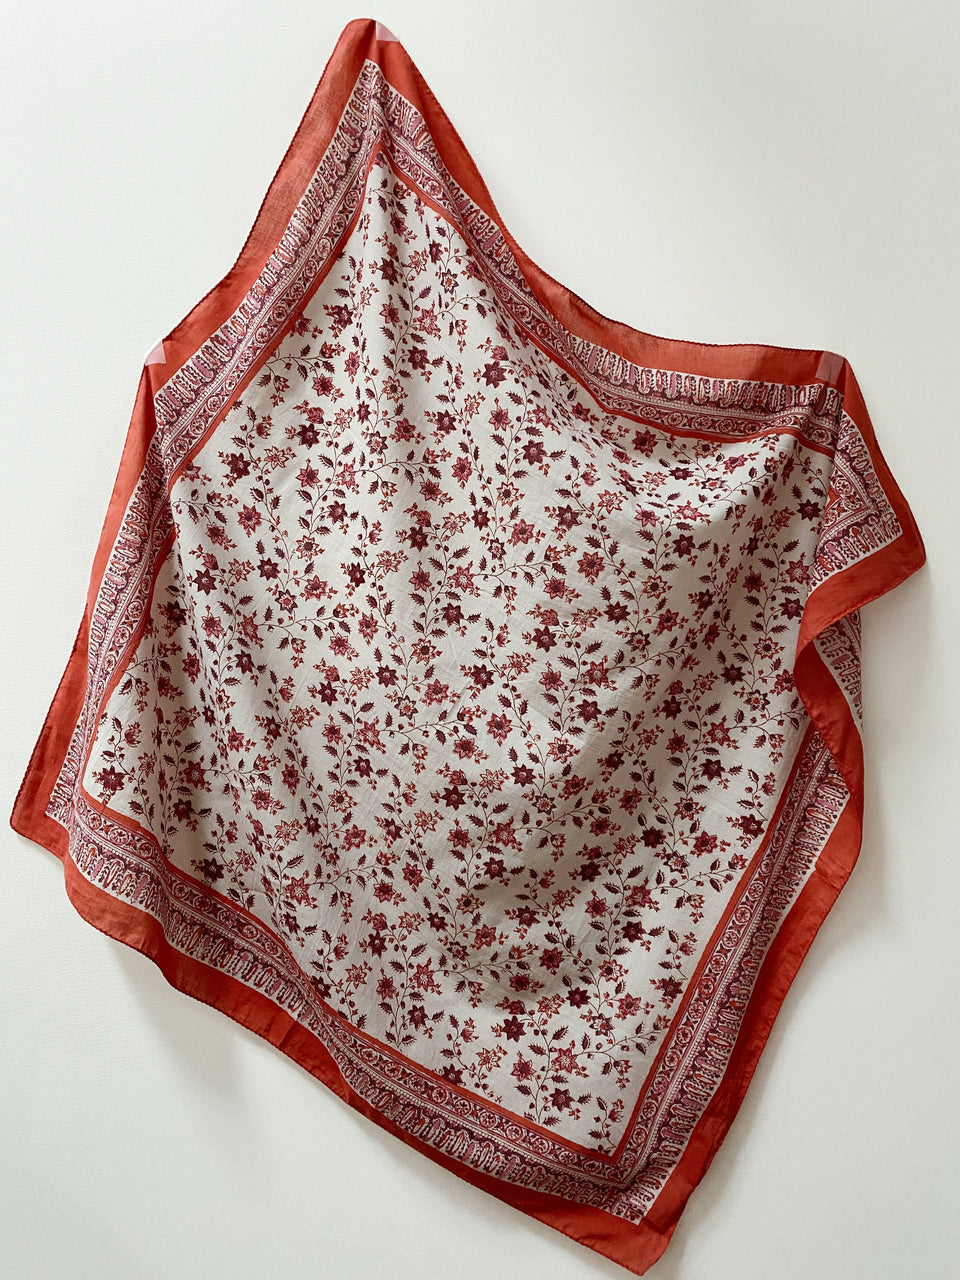 Block Printed Scarf - Petite Star Flower